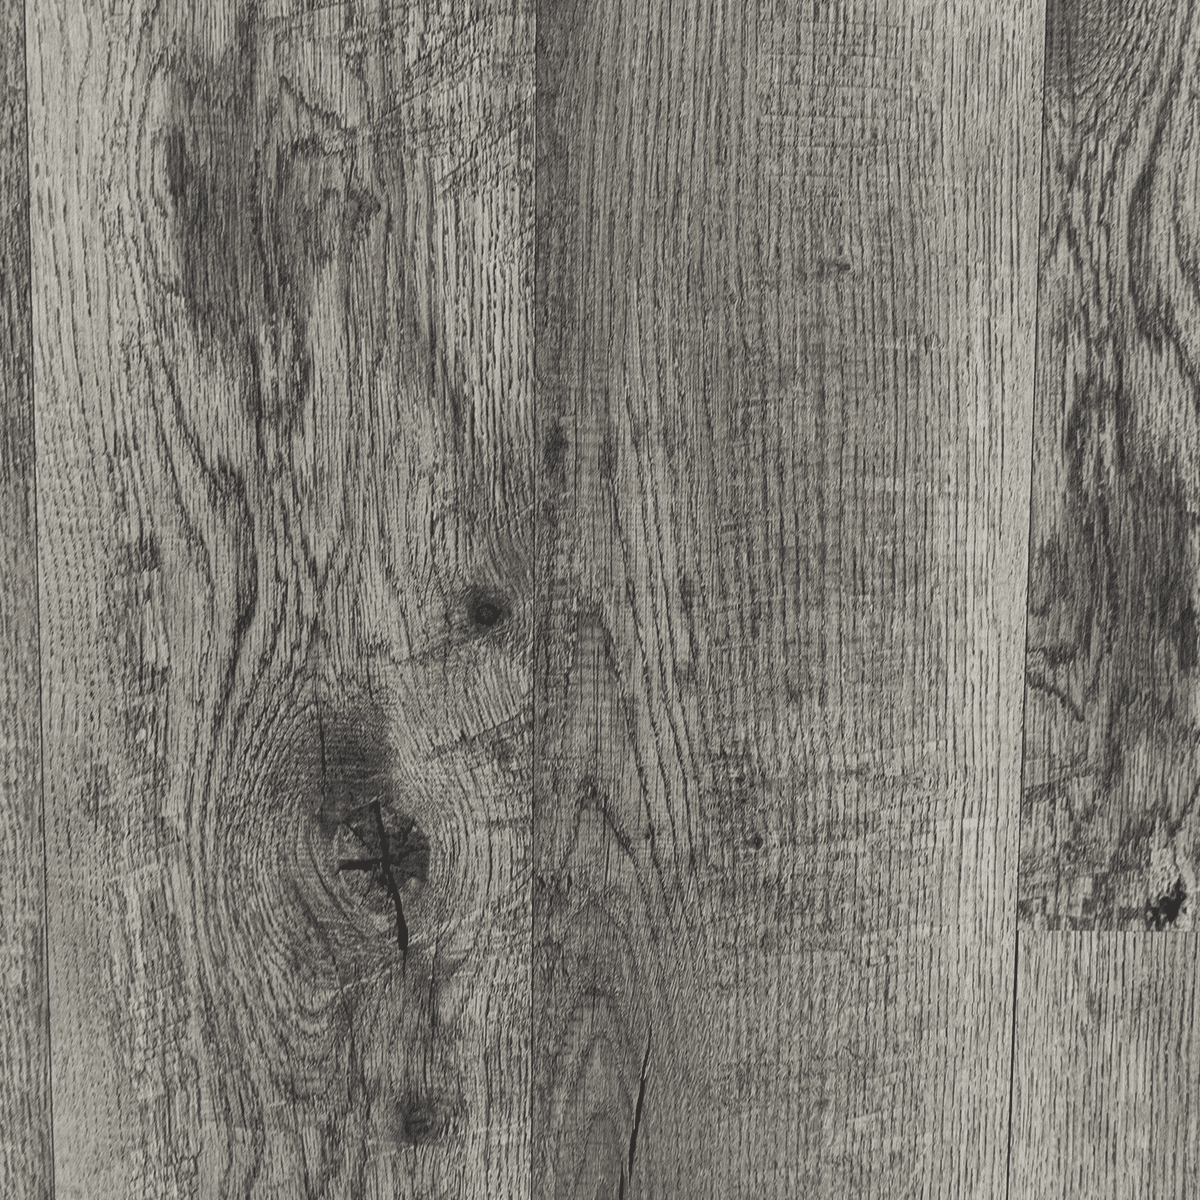 Mohawk Batavia Peppercorn Luxury Vinyl Plank The Last Inventory